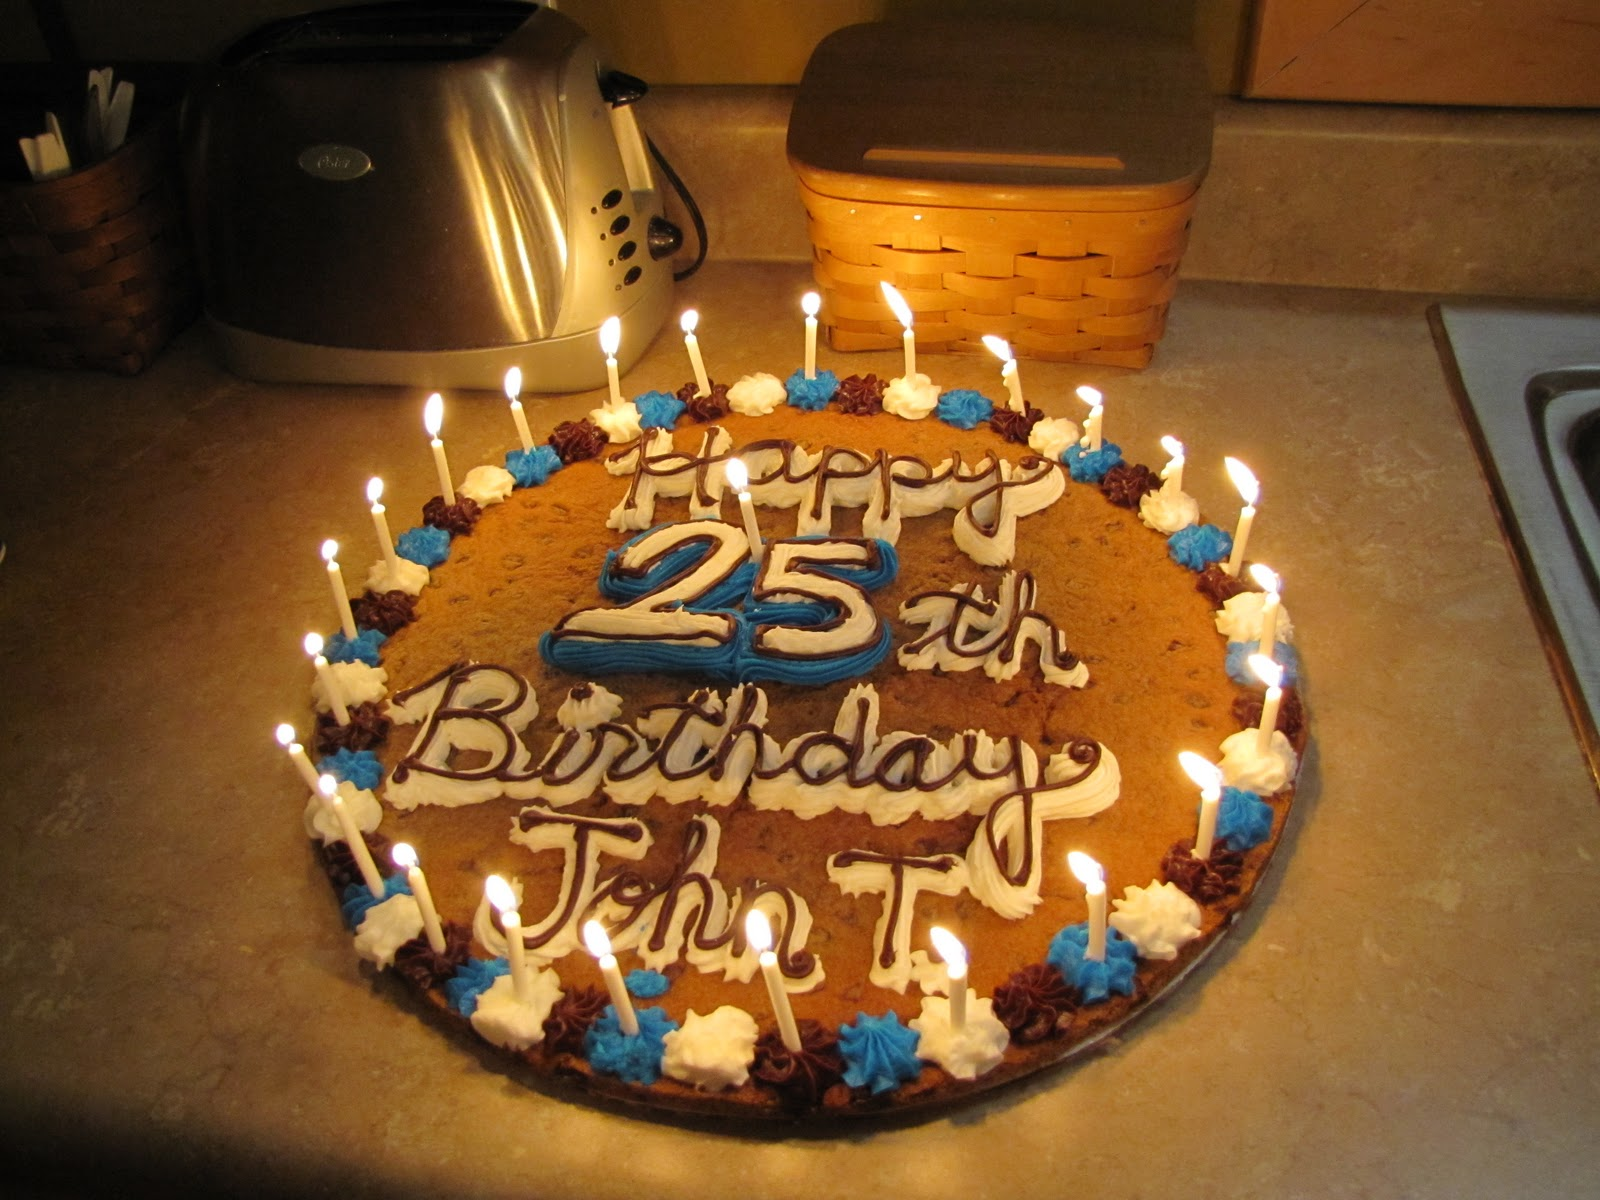 All About The Armes Happy 25th Birthday John T